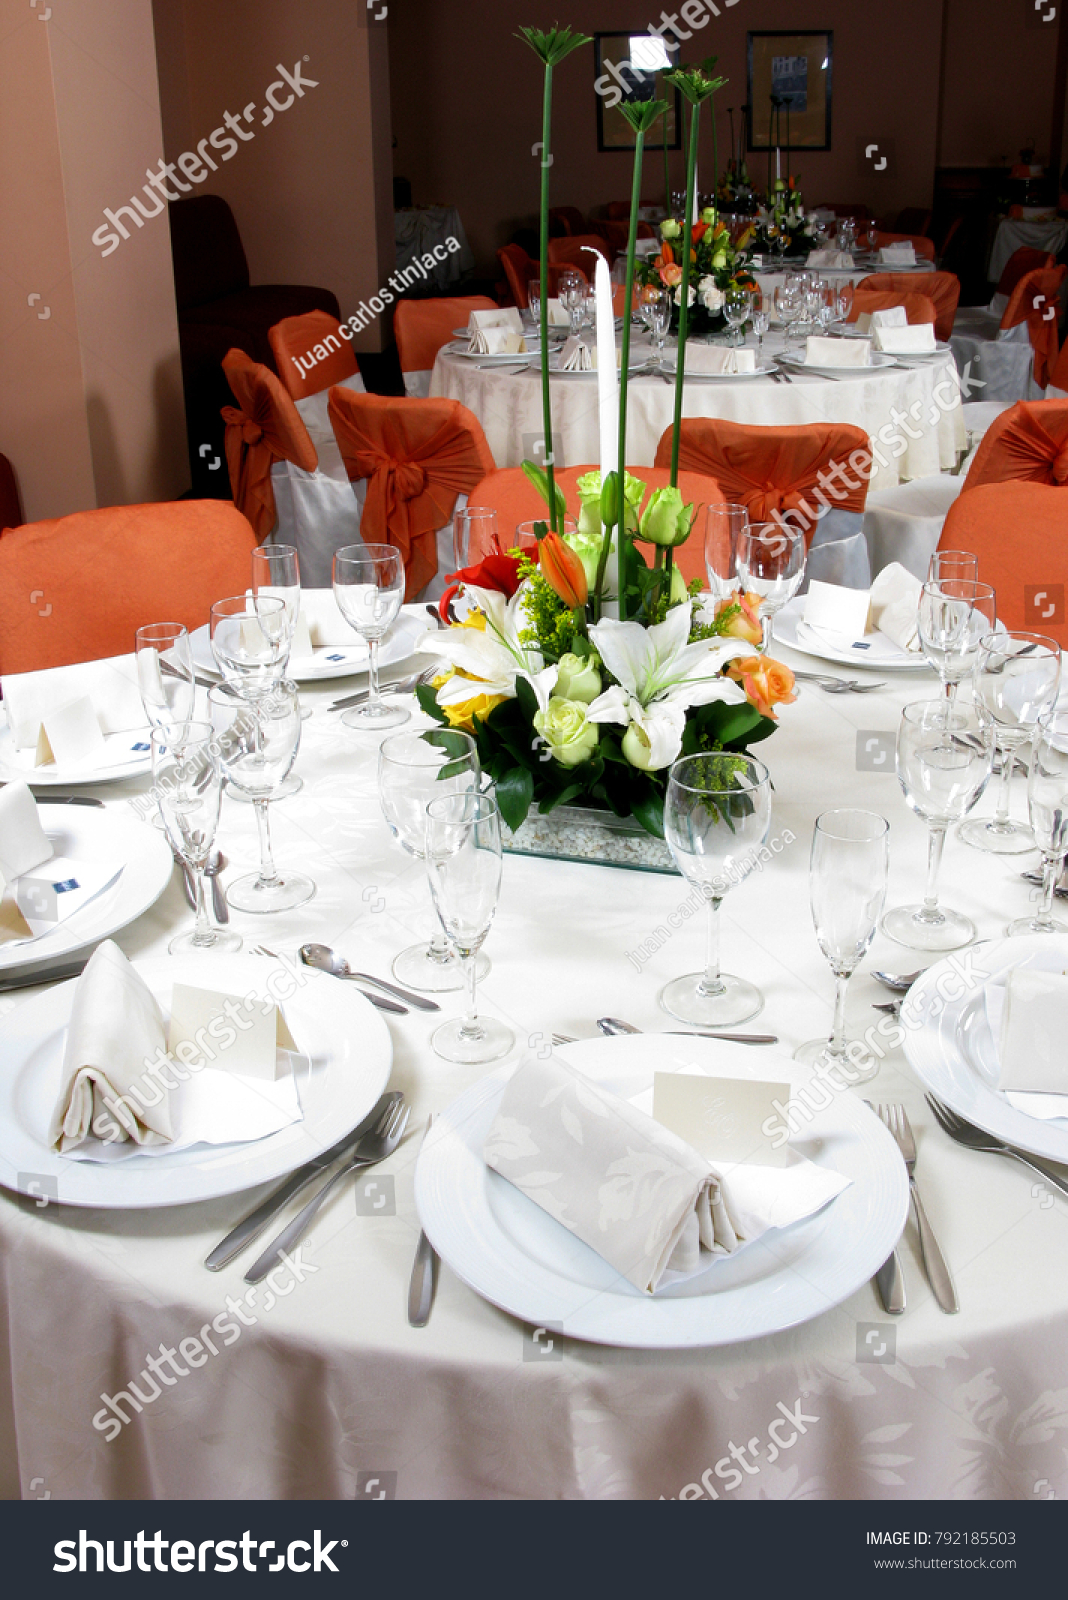 An Image Of A Table Setting At A Luxury Wedding Reception Ez Canvas